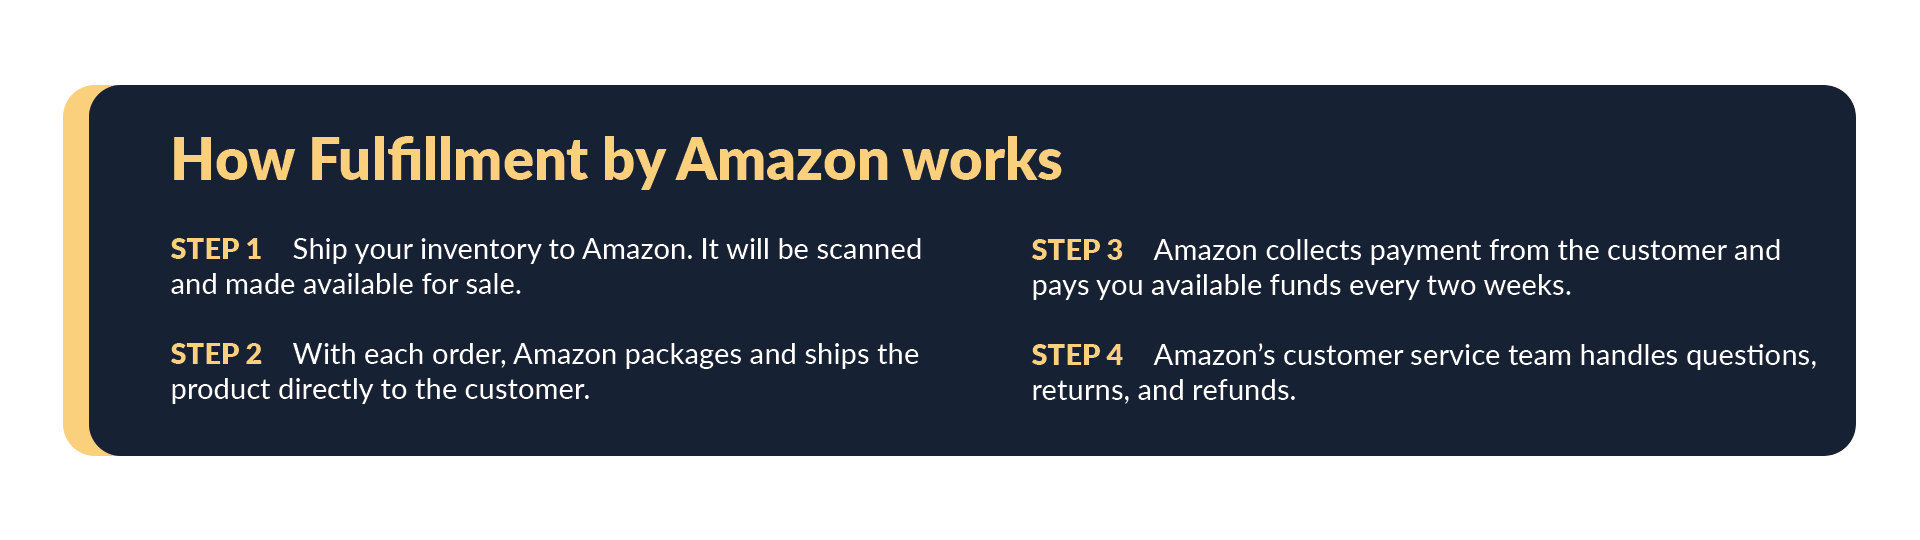 Step by step of how fulfillment by Amazon works.